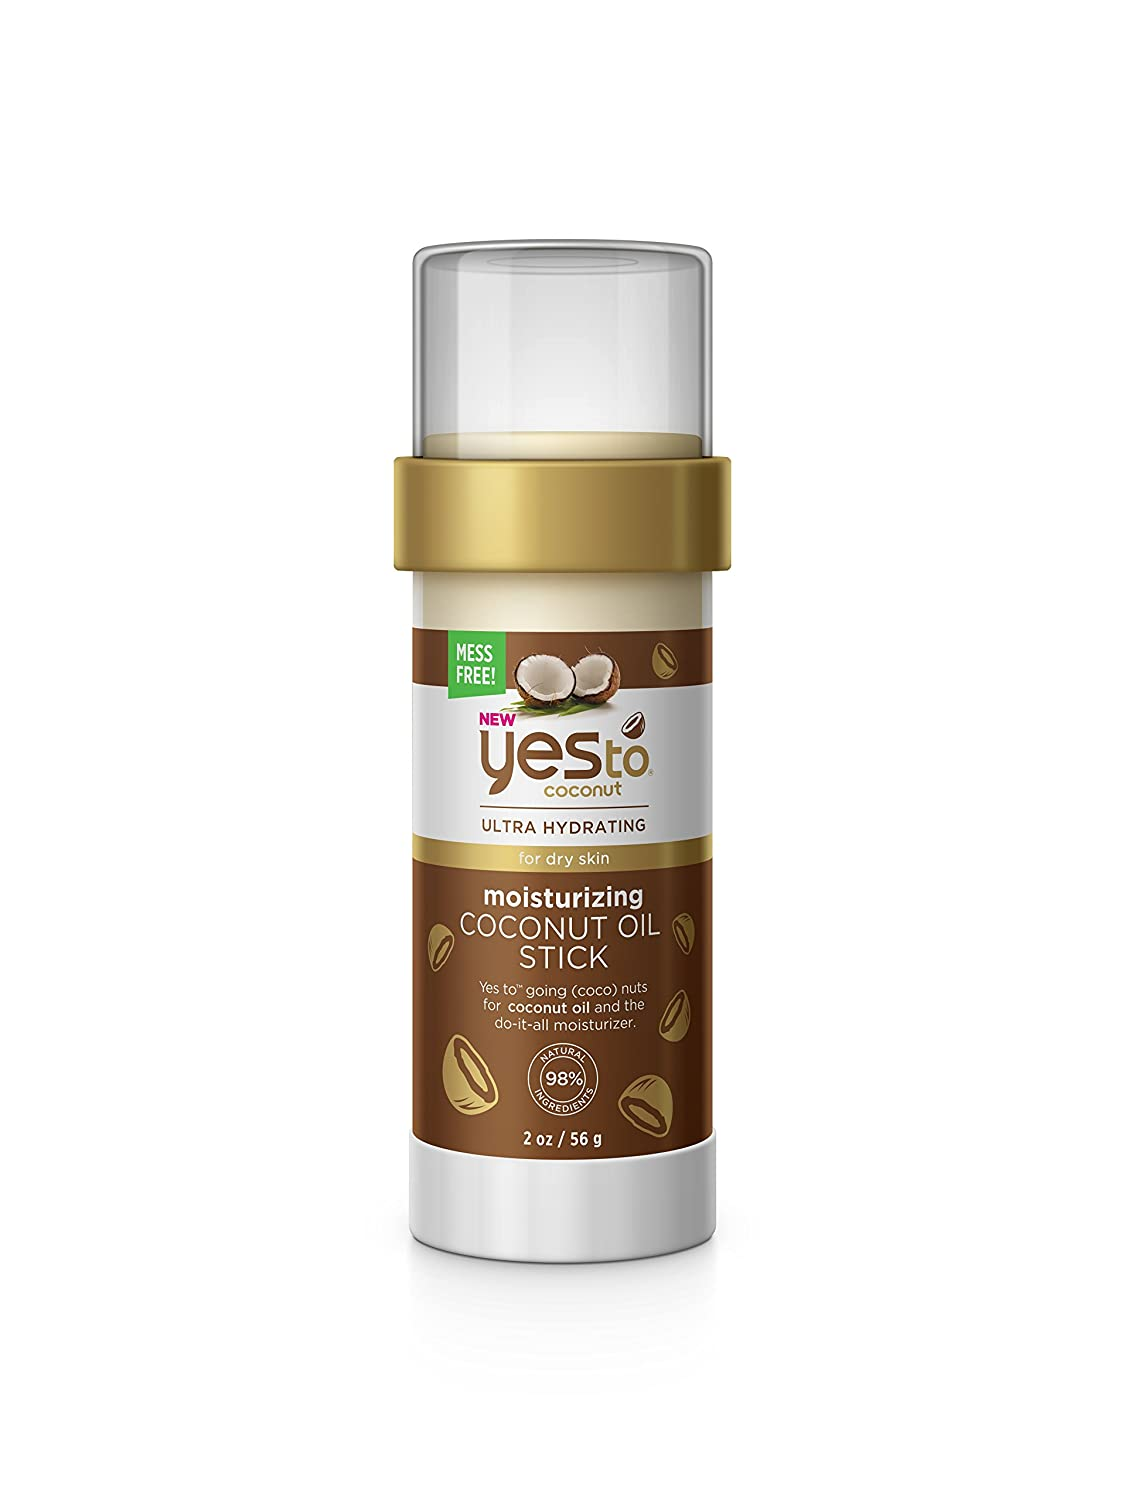 Yes to Coconut oil stick, 56g 1022785